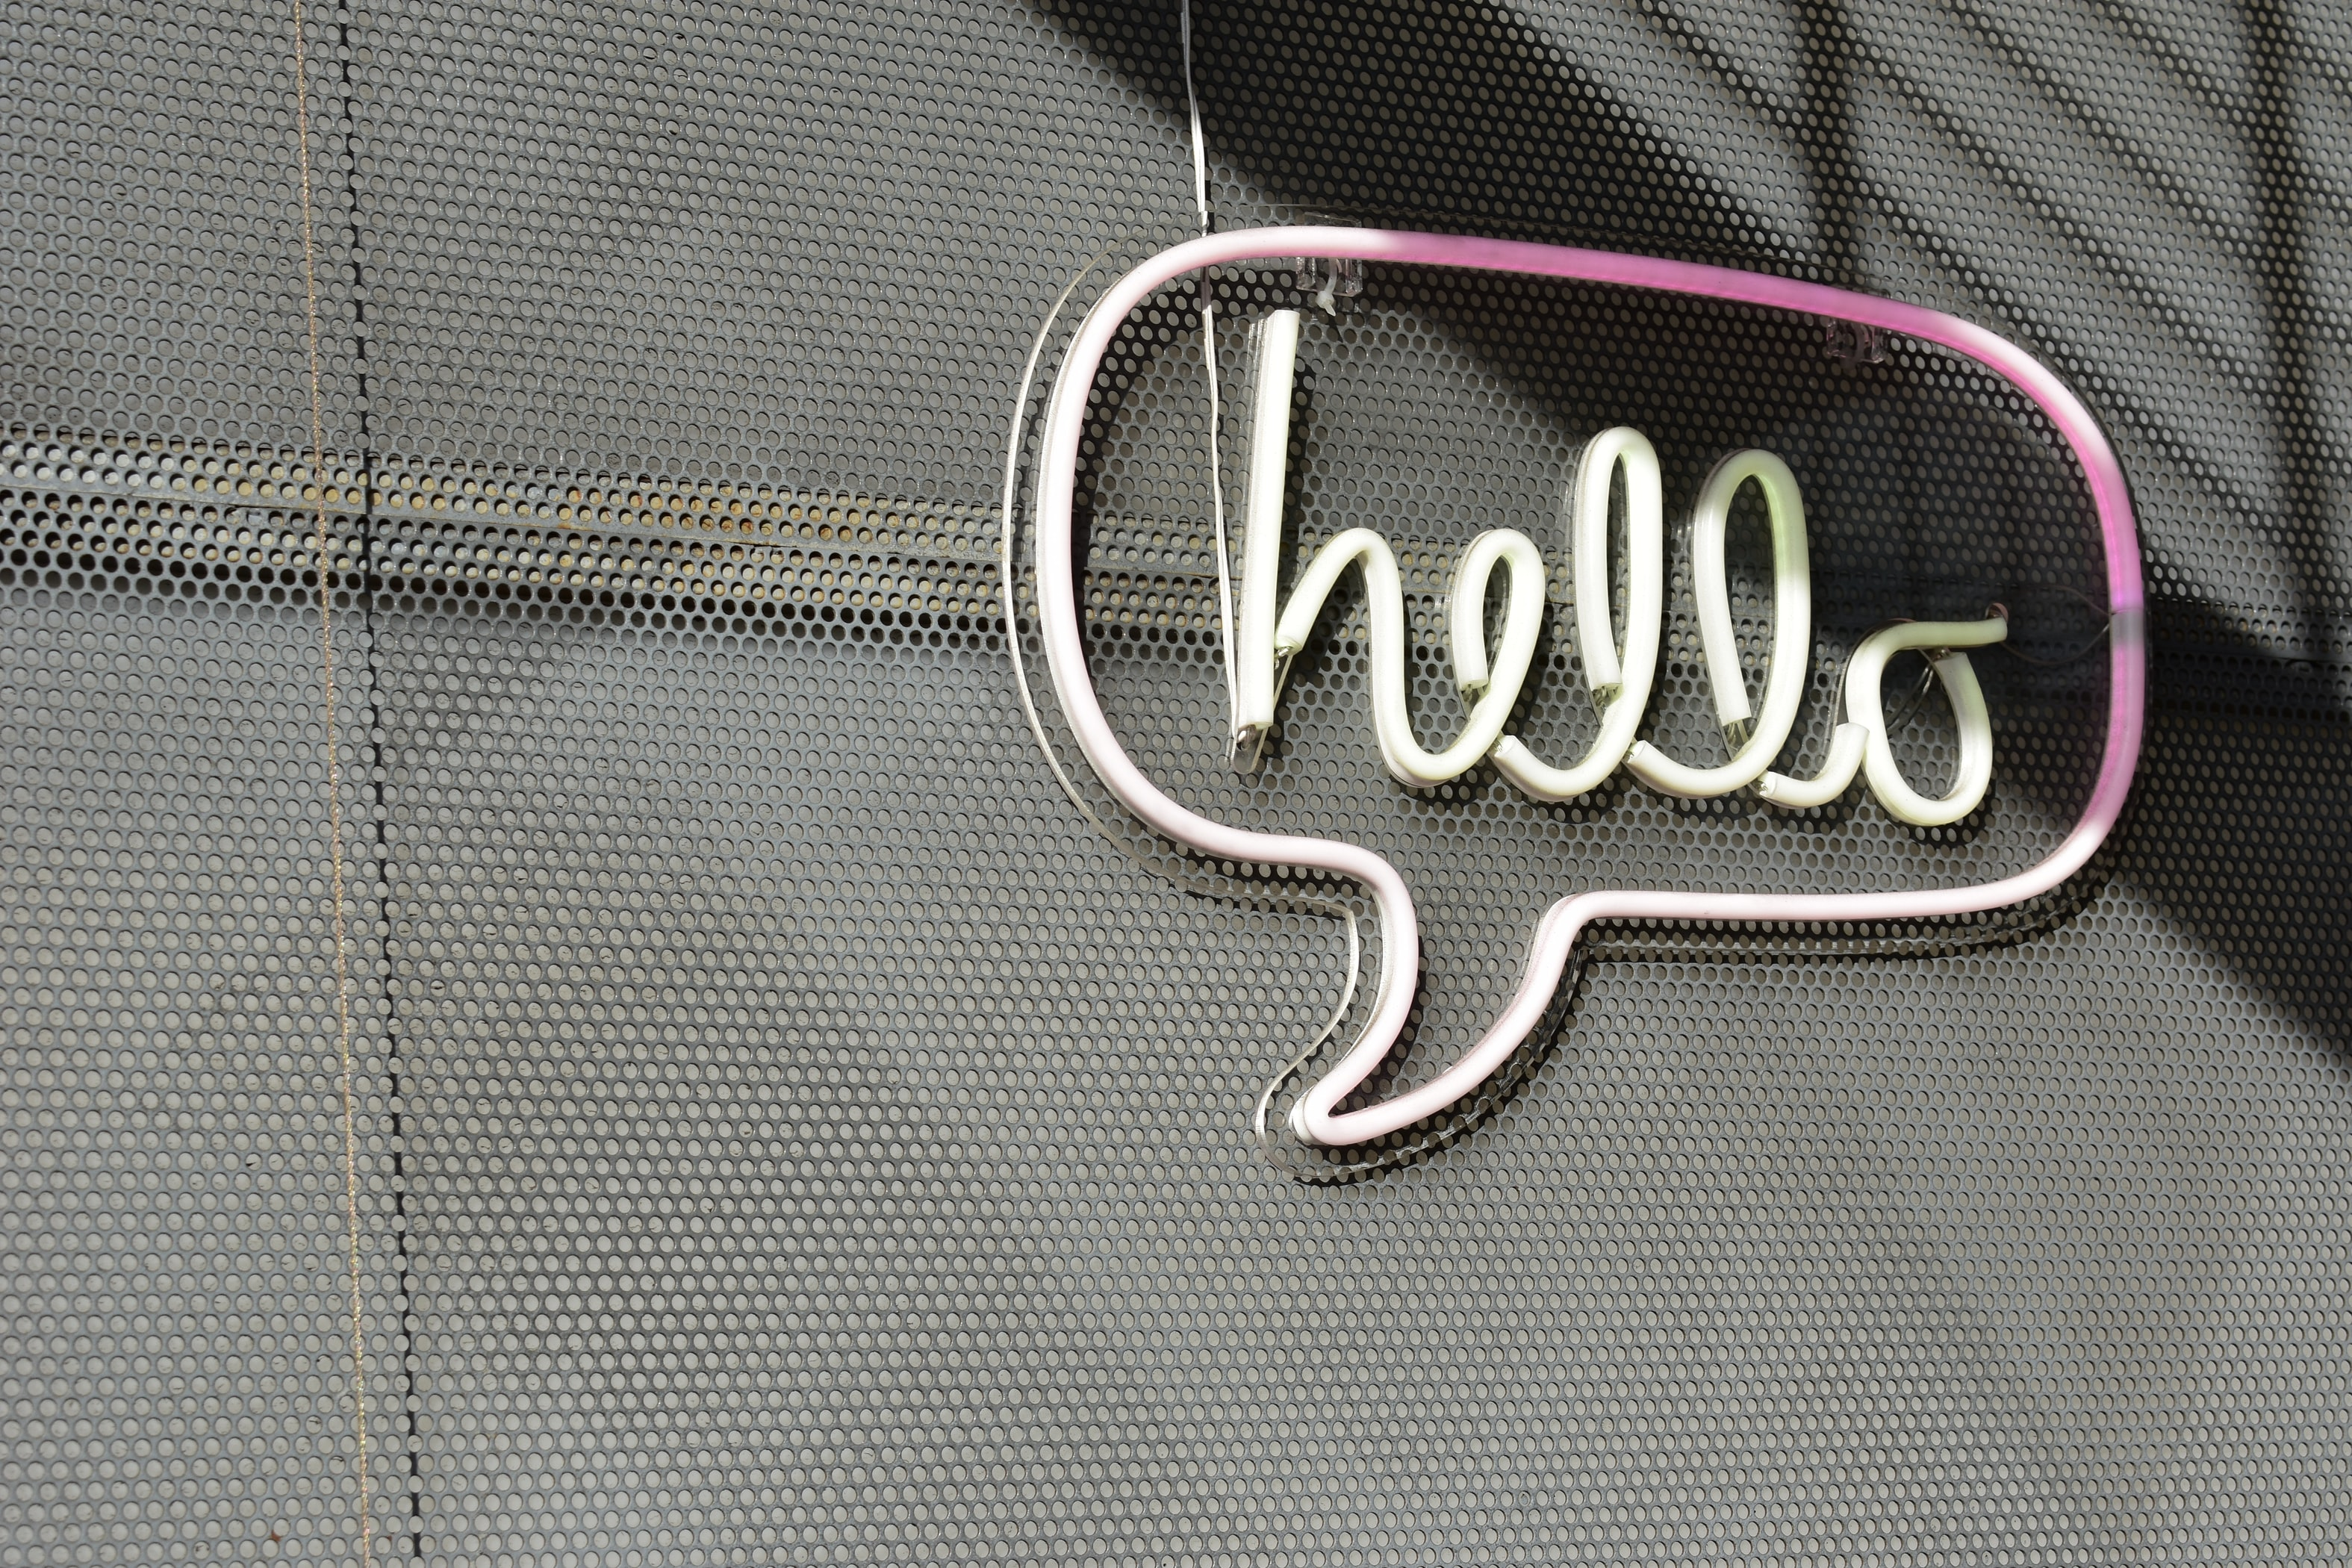 A neon sign of the words hello